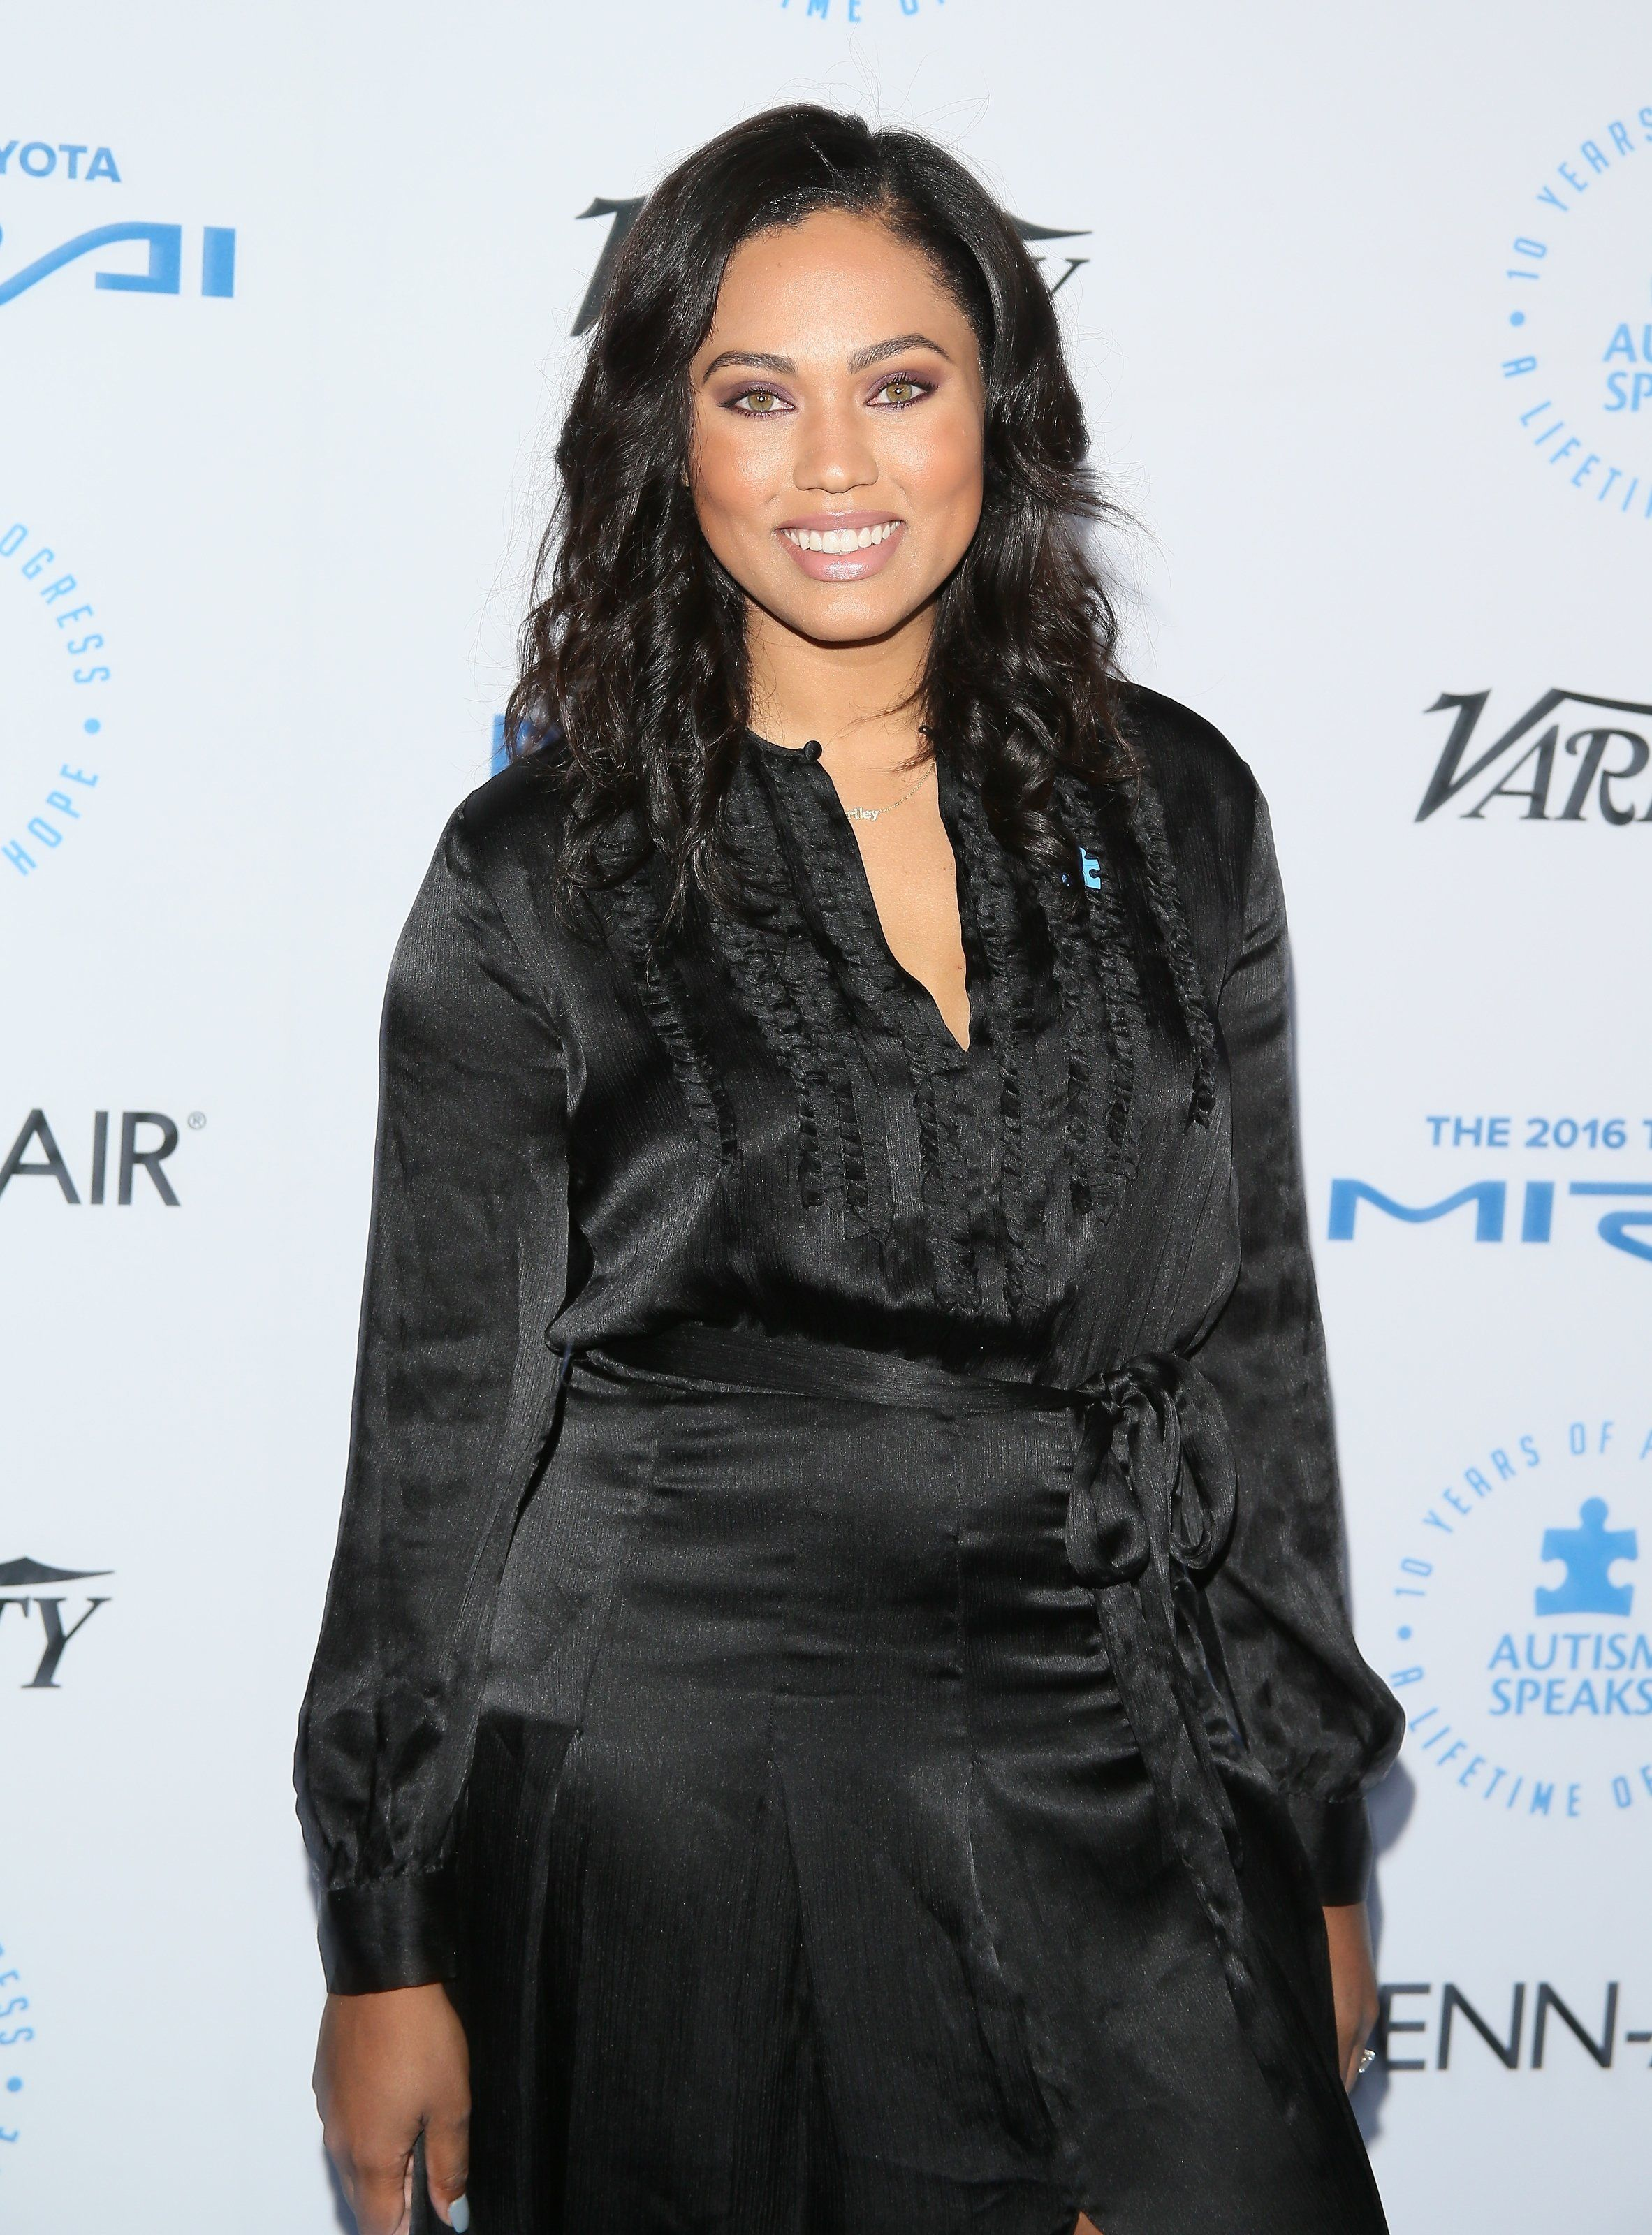 SANTA MONICA, CA - OCTOBER 08: Ayesha Curry attends the Autism Speaks to Los Angeles celebrity chef gala held at the Barker Hangar on October 8, 2015 in Santa Monica, California.  (Photo by JB Lacroix/WireImage)